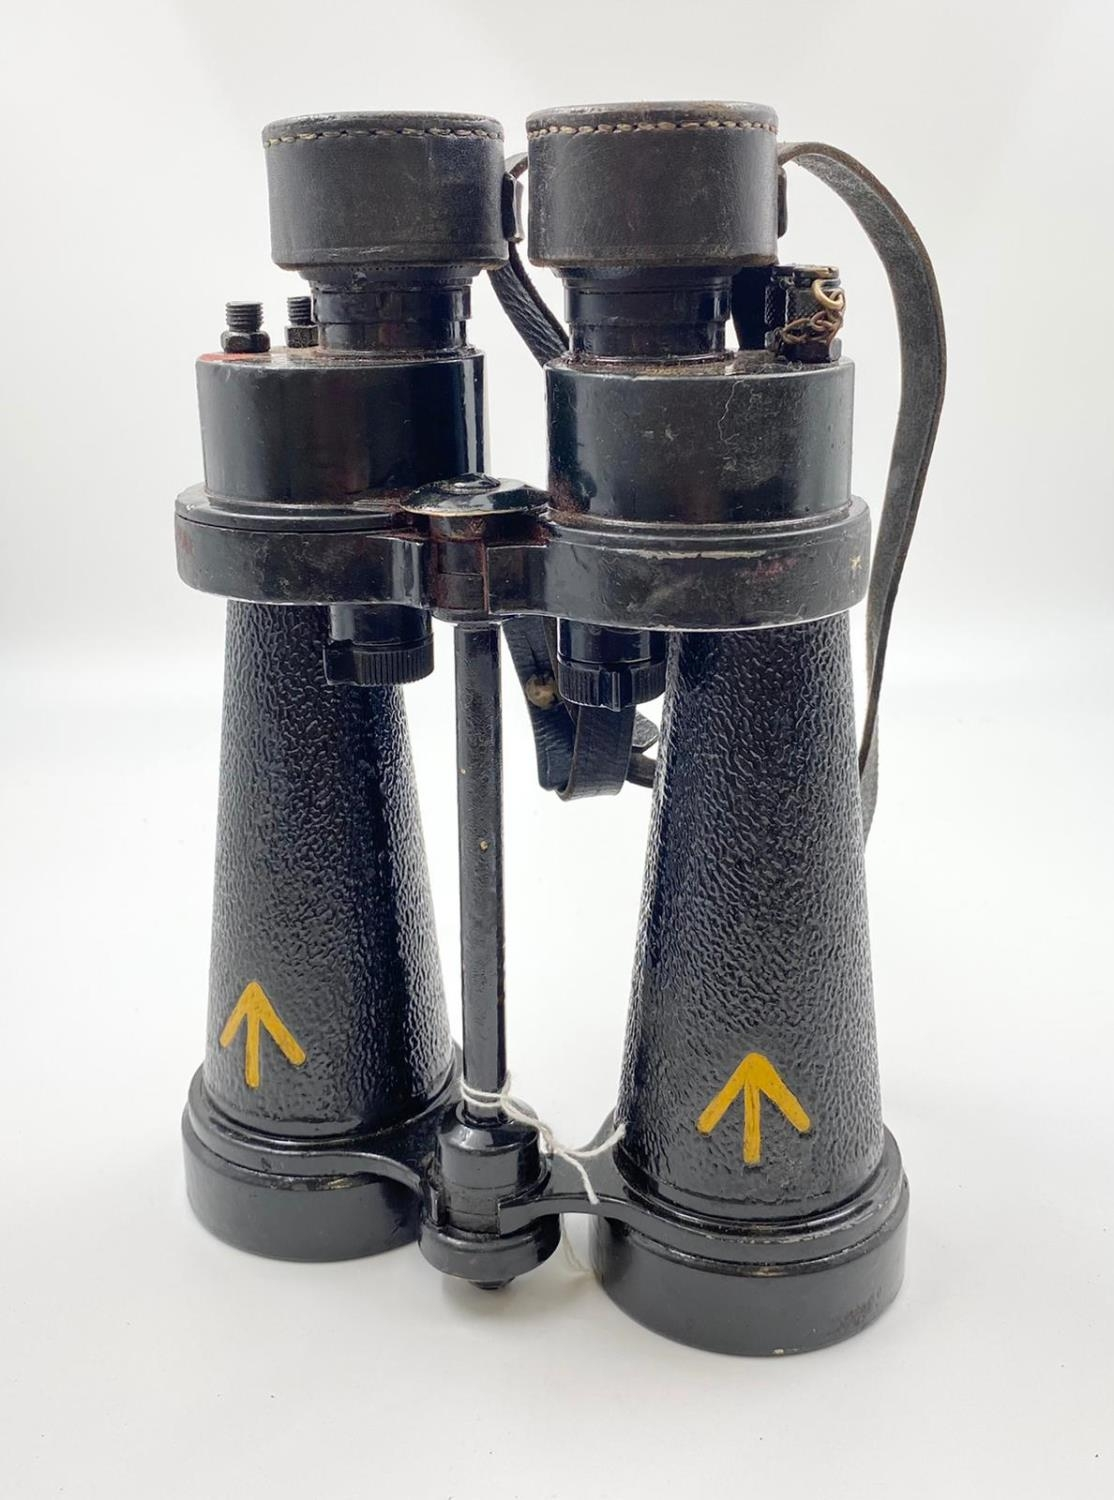 1942 Dated Barr & Stroud Royal Navy Submarine Hunting Binoculars. With anti-glare filters.